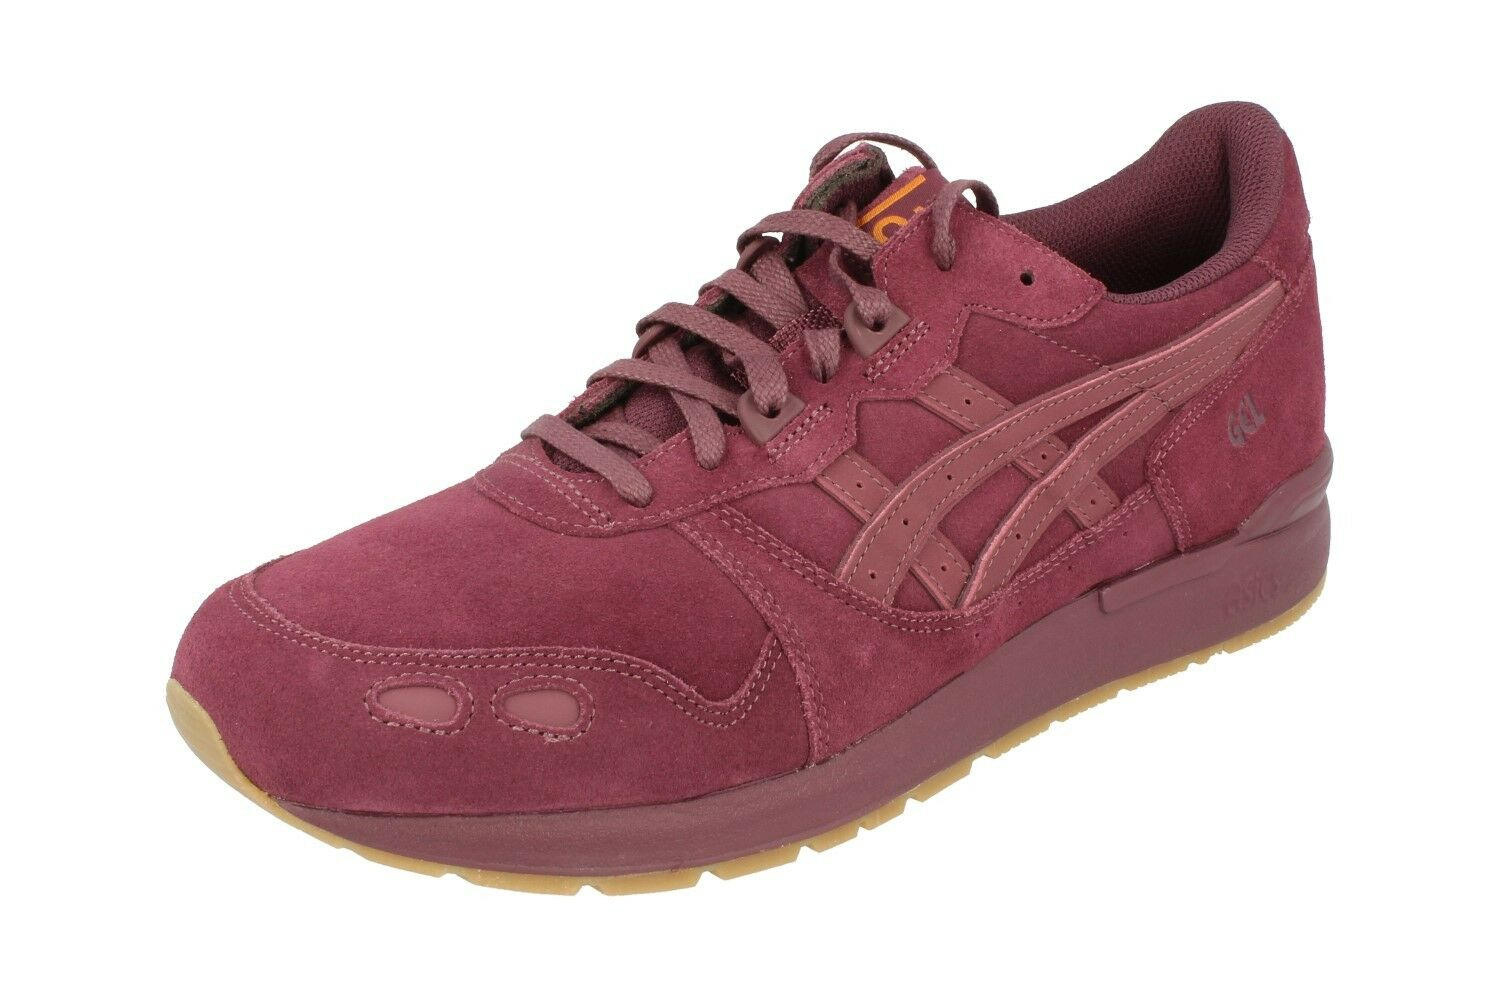 f94ef699c957 Asics Tiger Tiger Tiger Mens Gel-Lyte Running Trainers H7ARK Sneakers Shoes  3333 08f90b